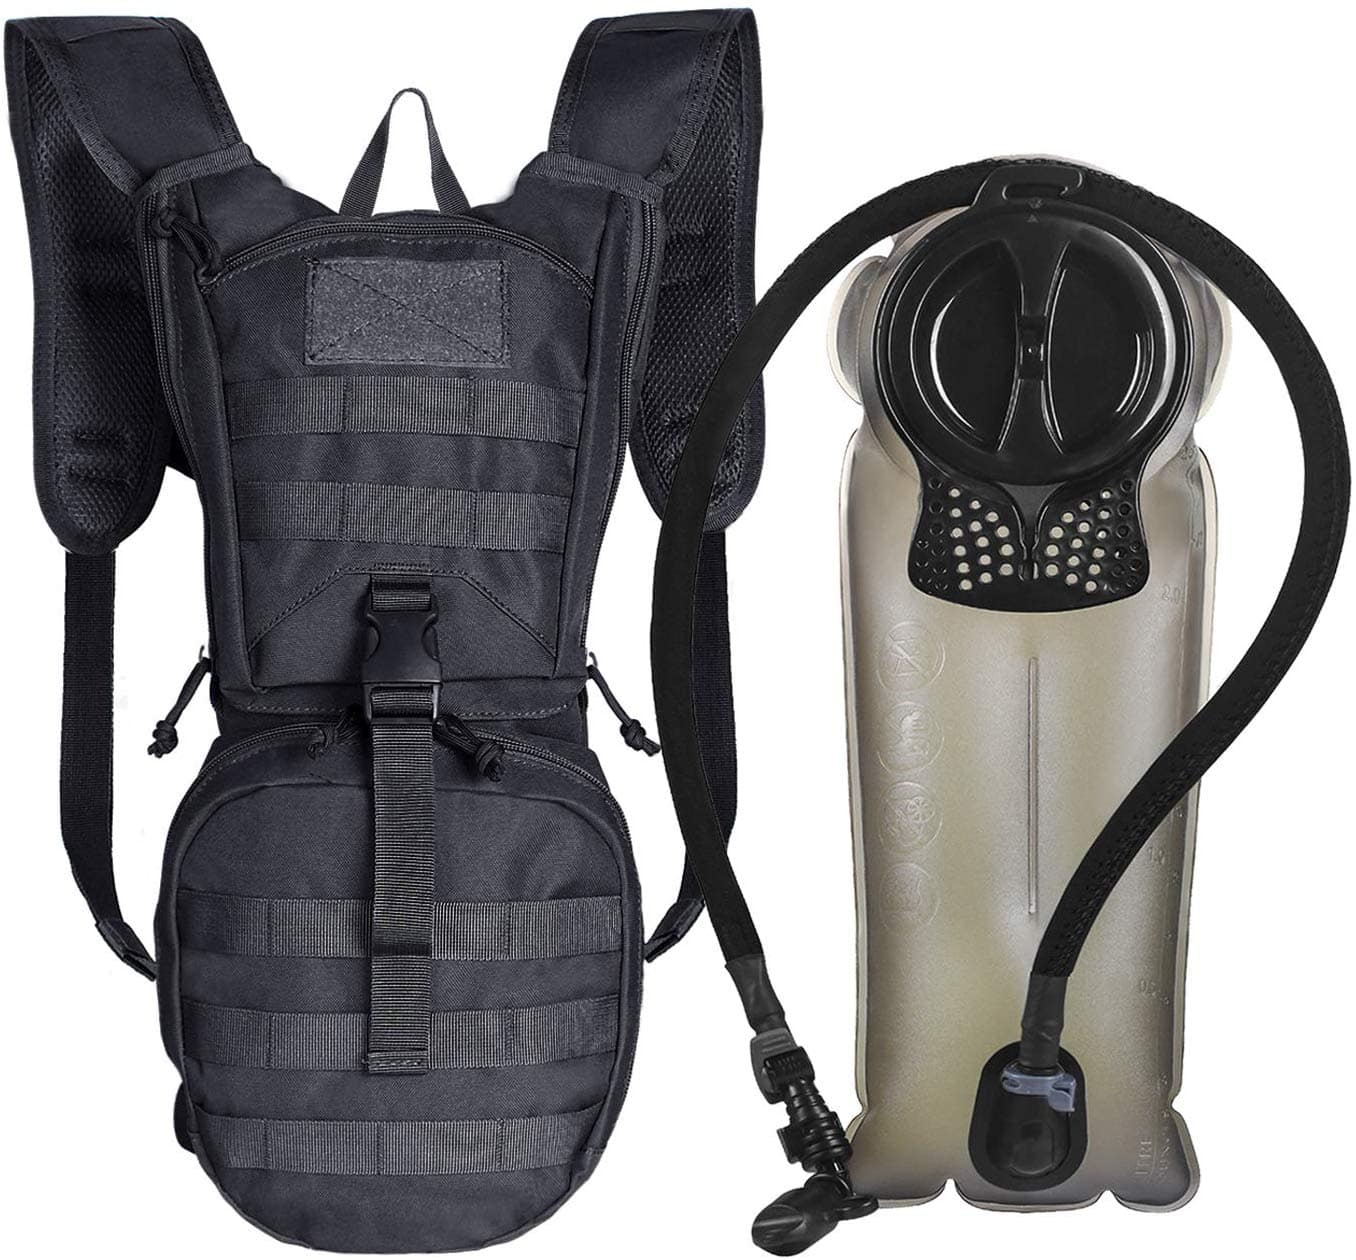 Unigear Tactical Hydration Packs Backpack Series (Various Colors) w/ 2.5L Water Bladder From $19.99 + FS